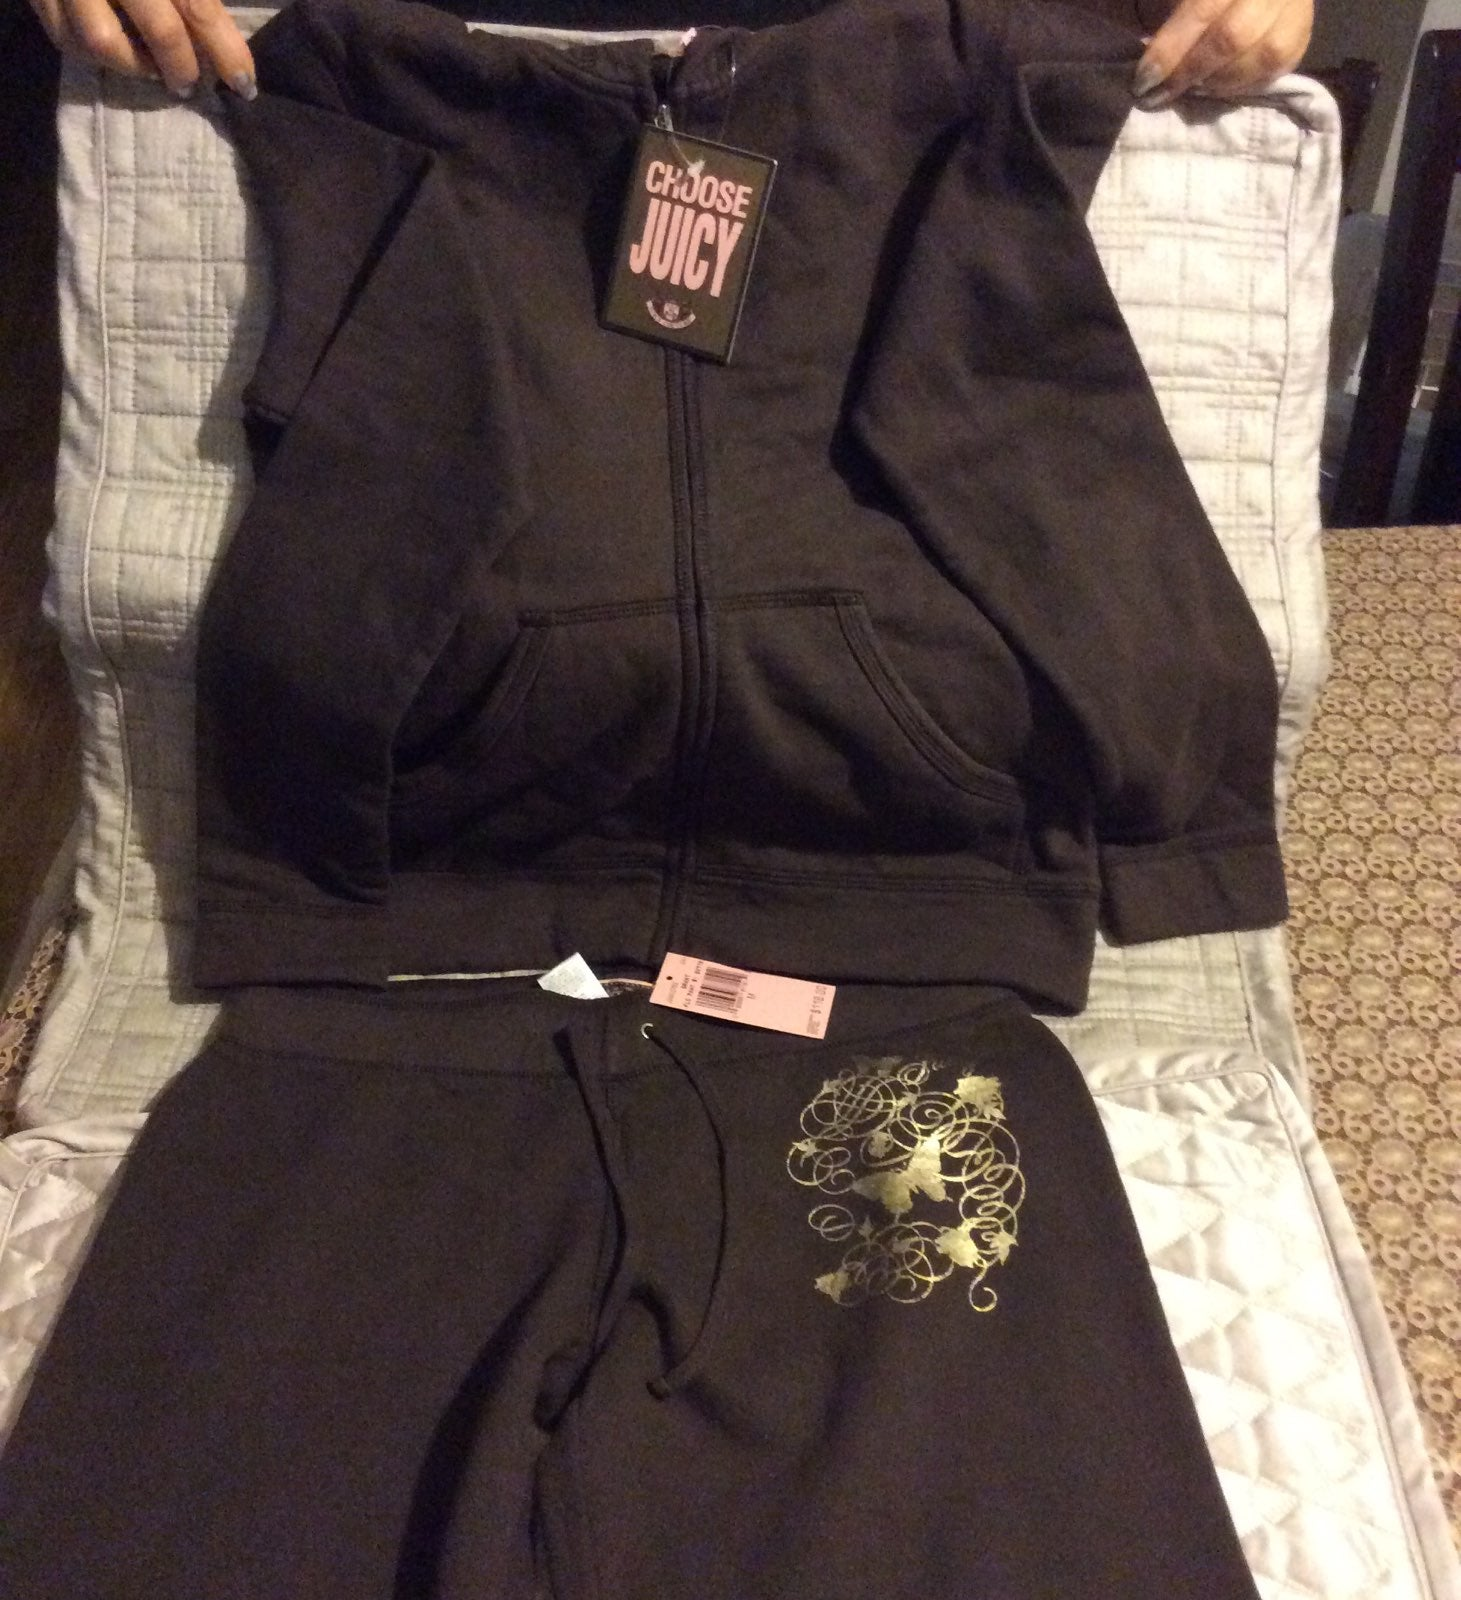 Juicy Couture tracksuit size M